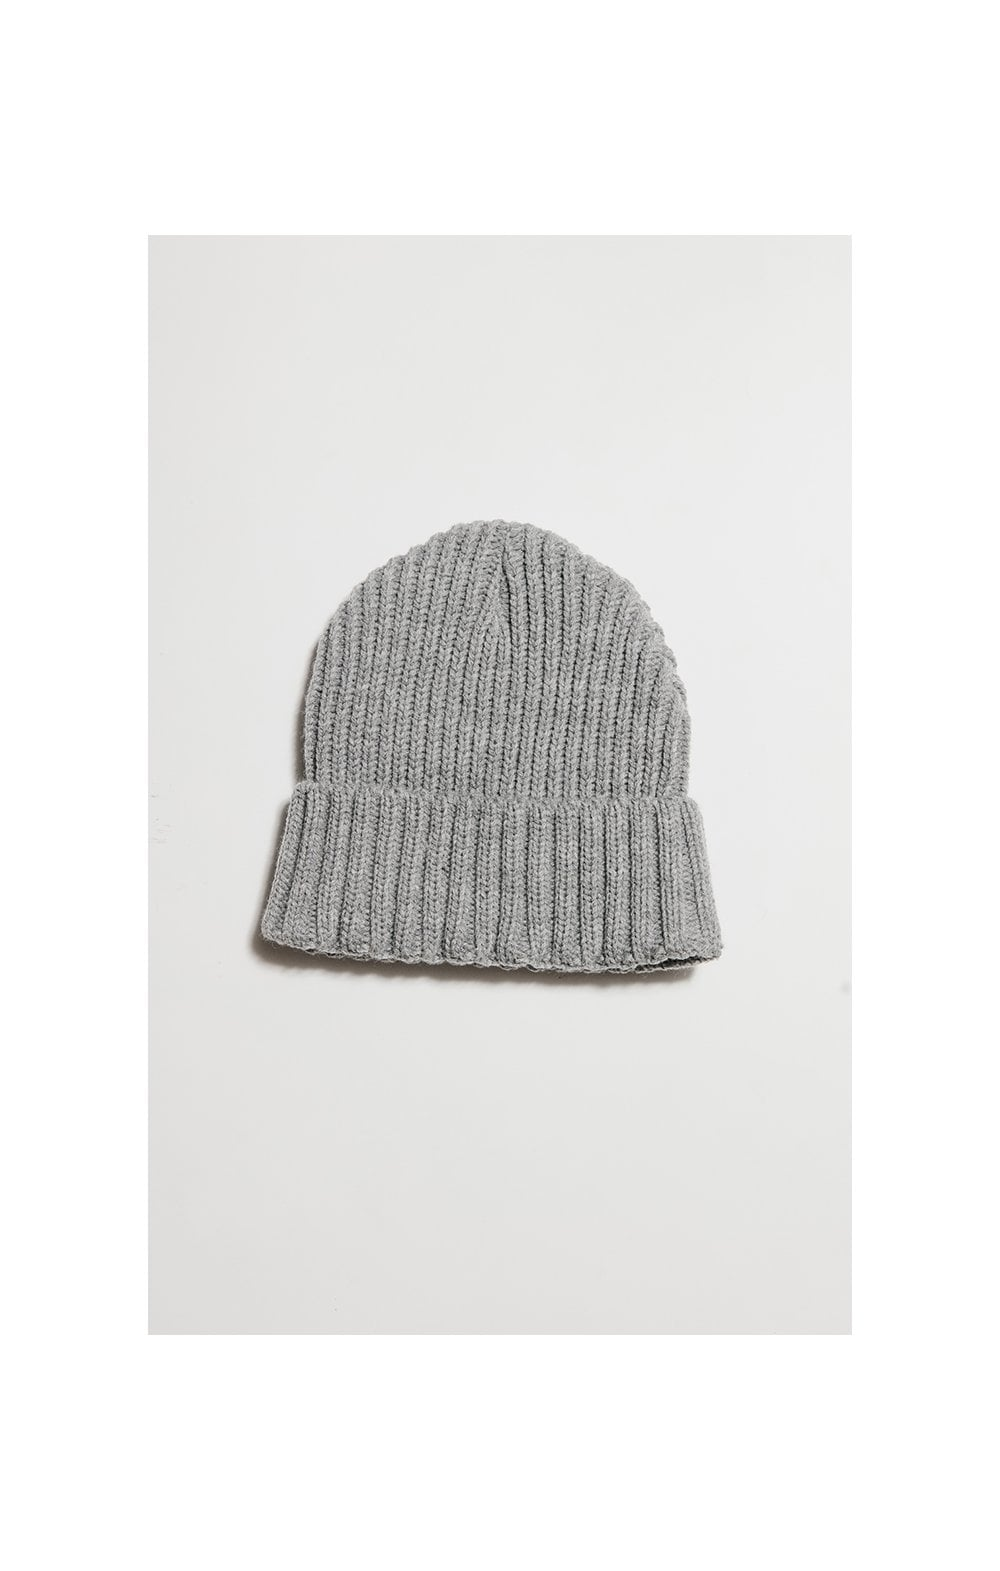 Load image into Gallery viewer, SikSilk Rib Cuff Beanie - Grey Marl & Gold (1)